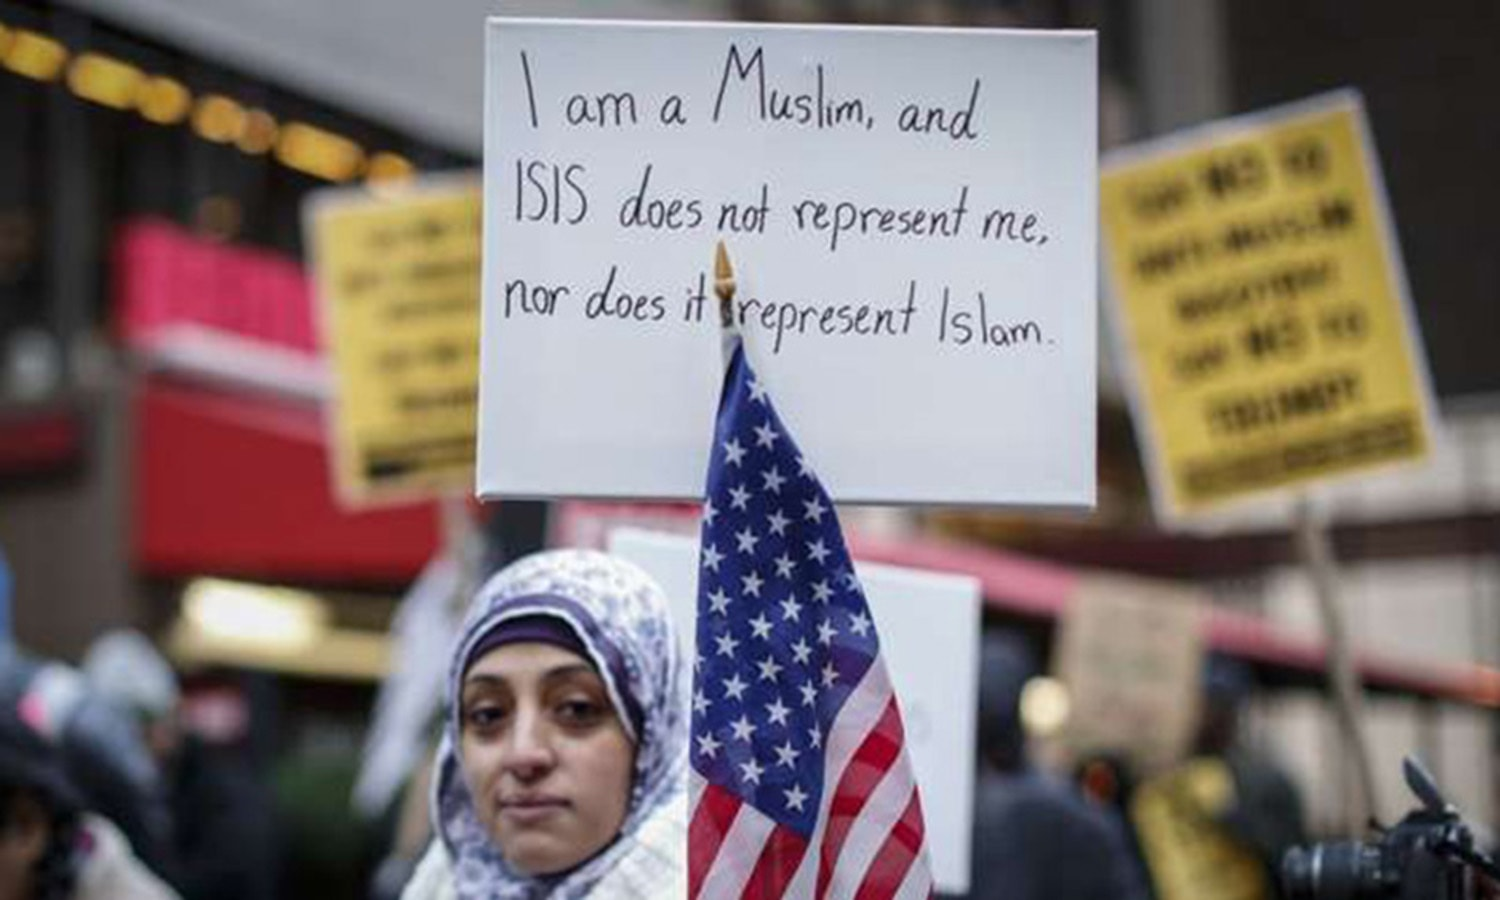 A Muslim woman holds a poster condemning ISIS at a protest.—AFP